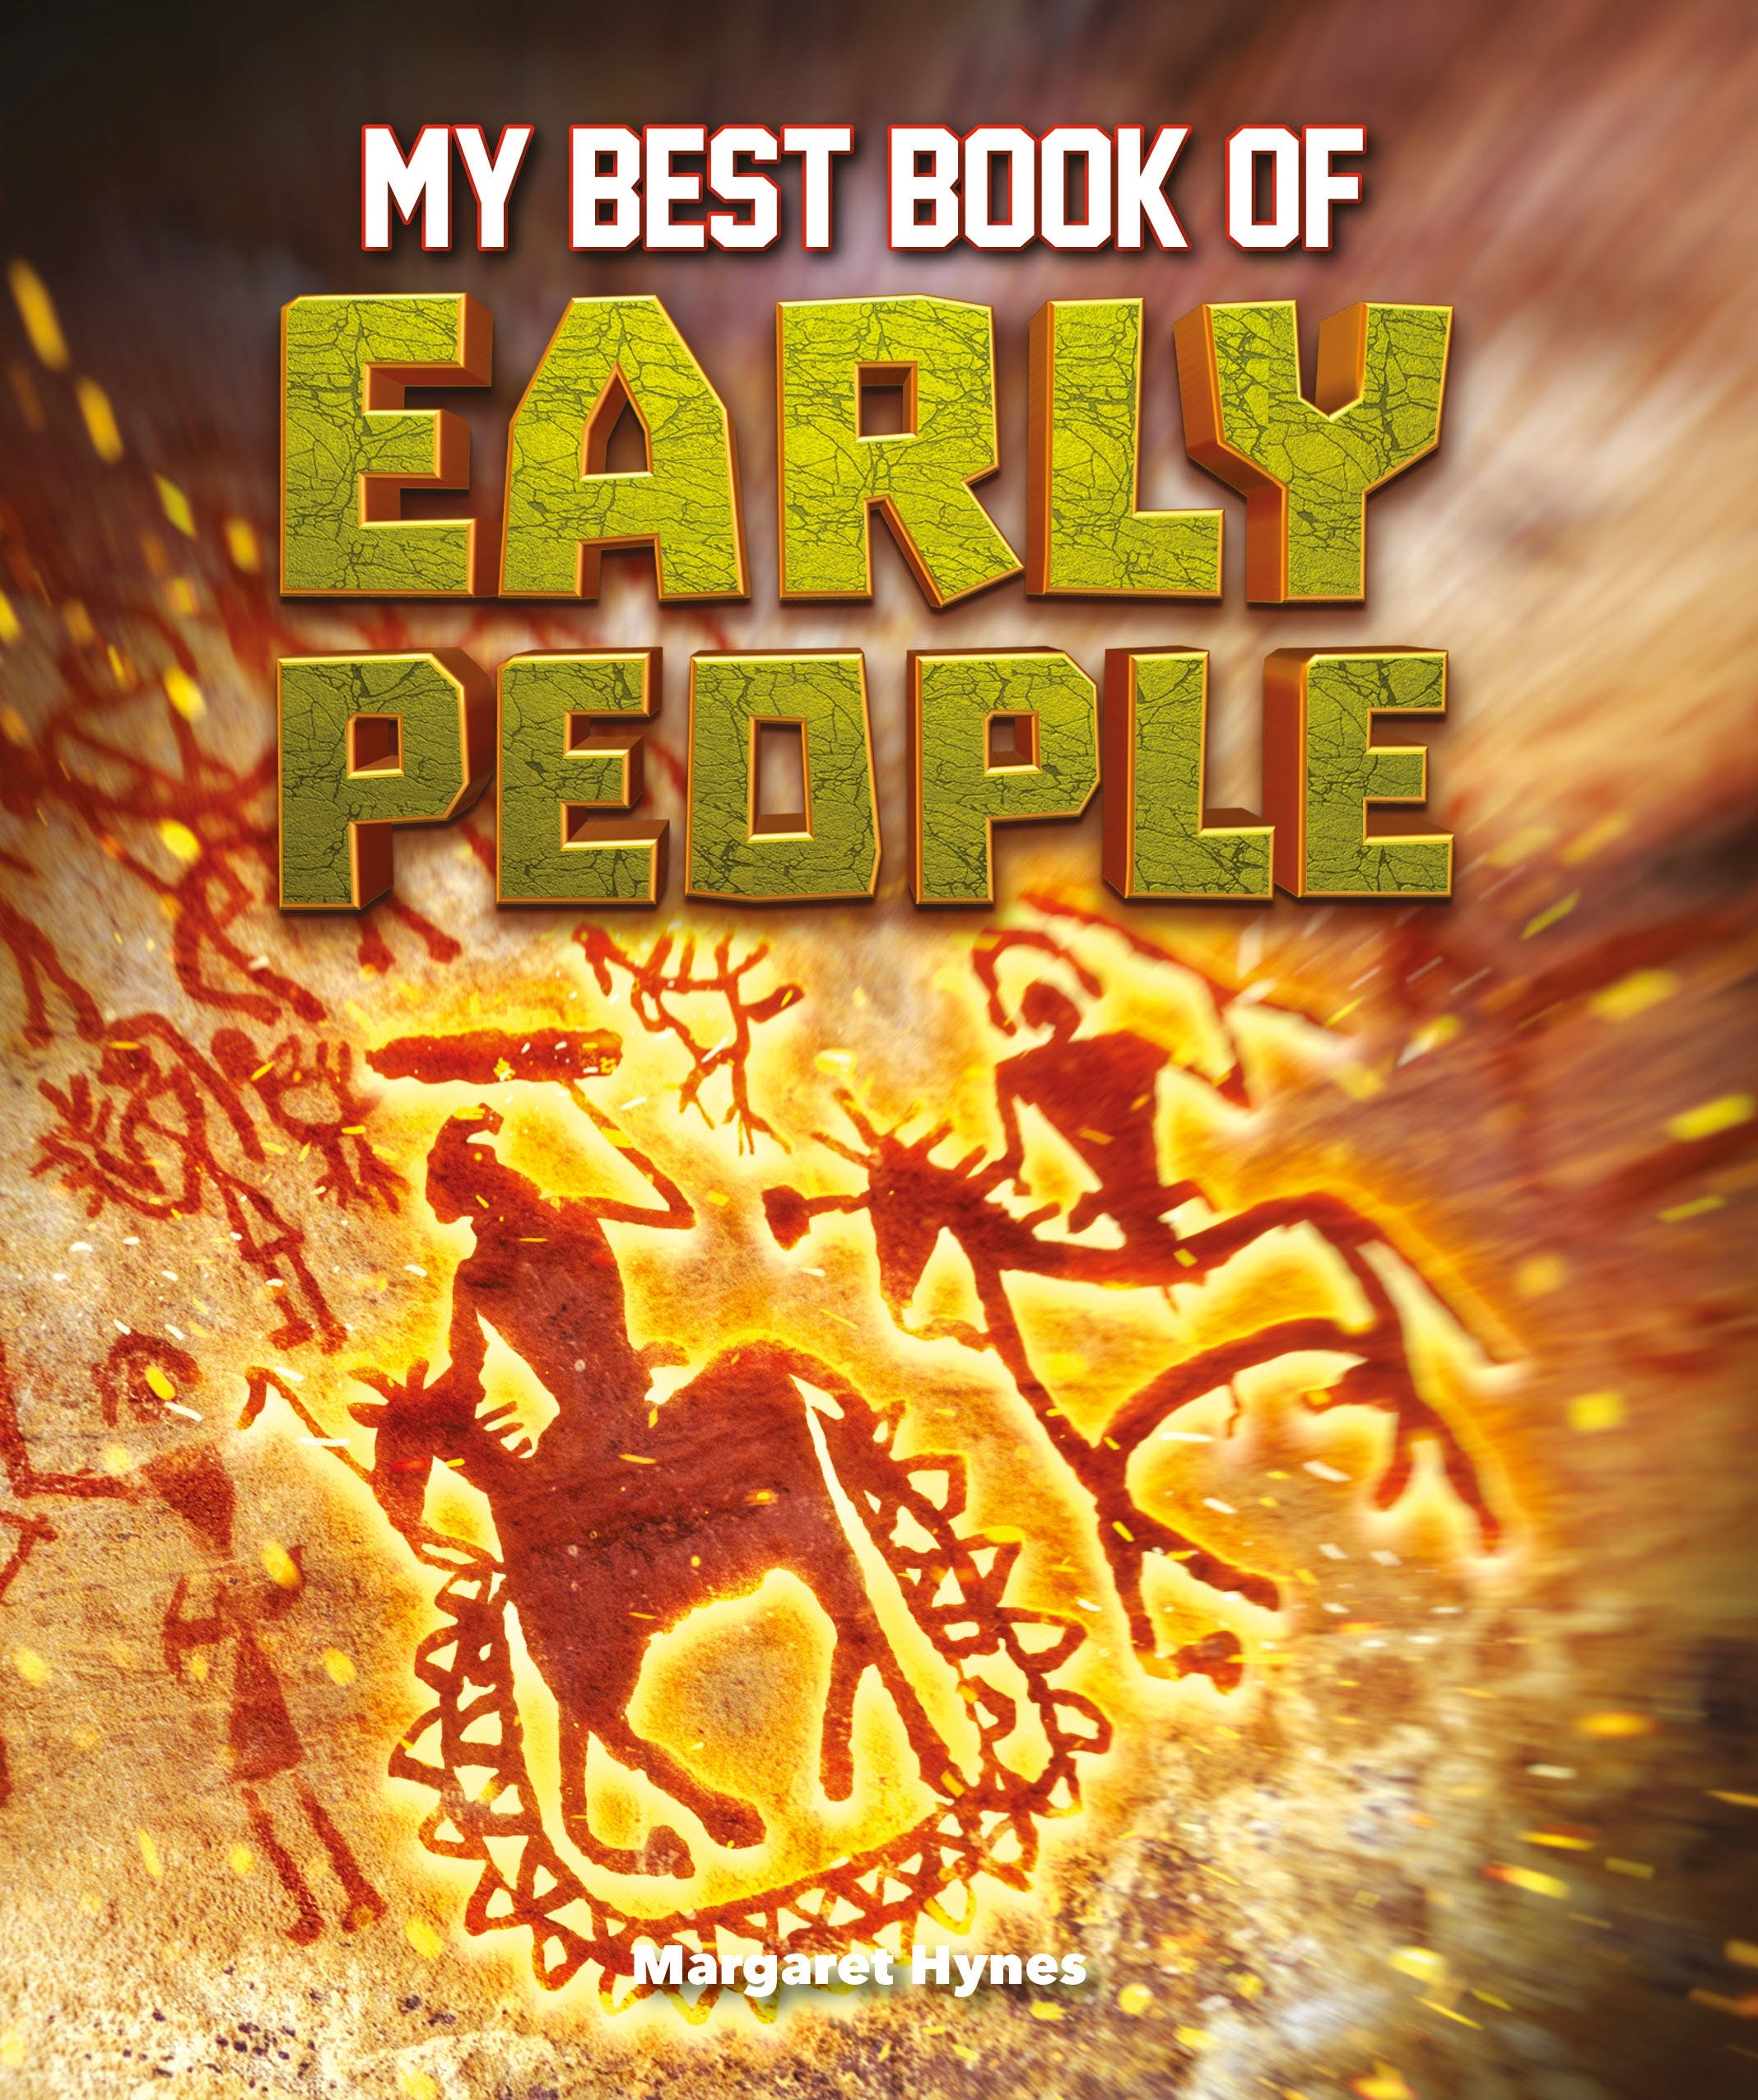 Image of My Best Book of Early People